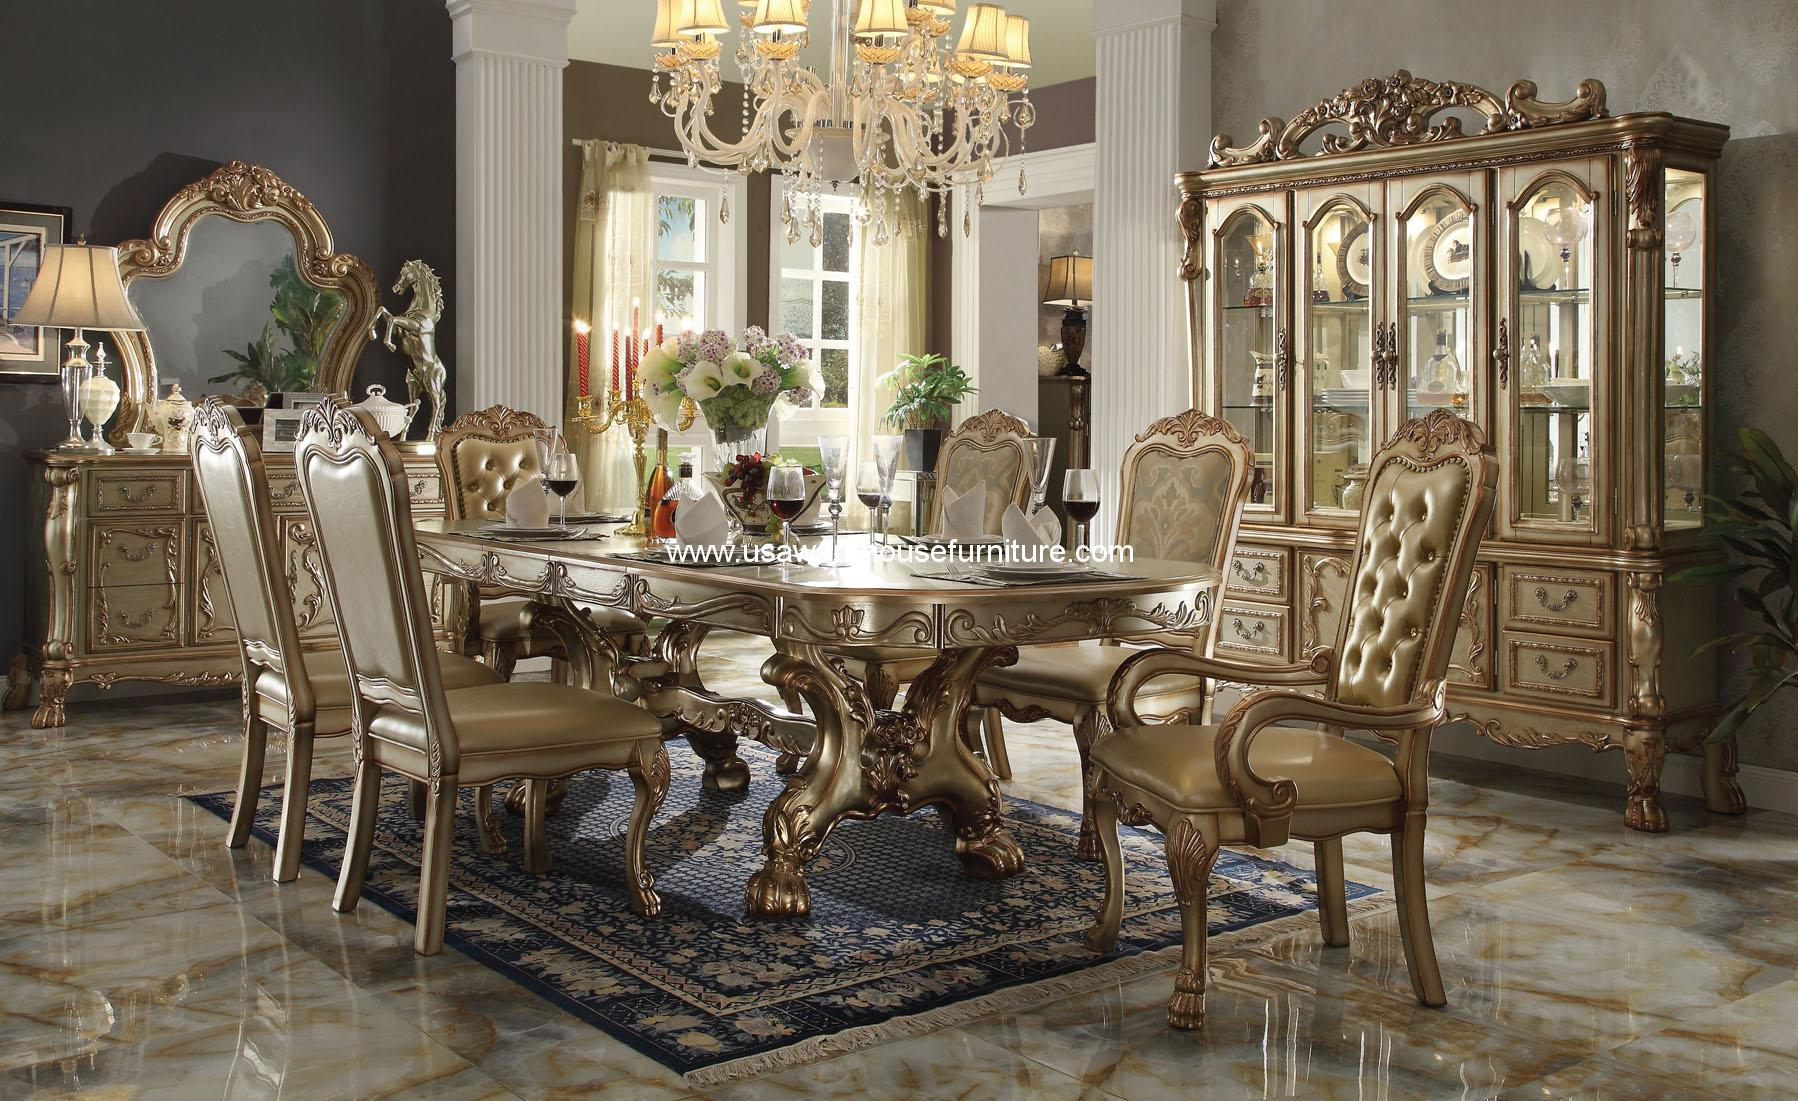 Dining Table And Chairs For Sale In Karachi